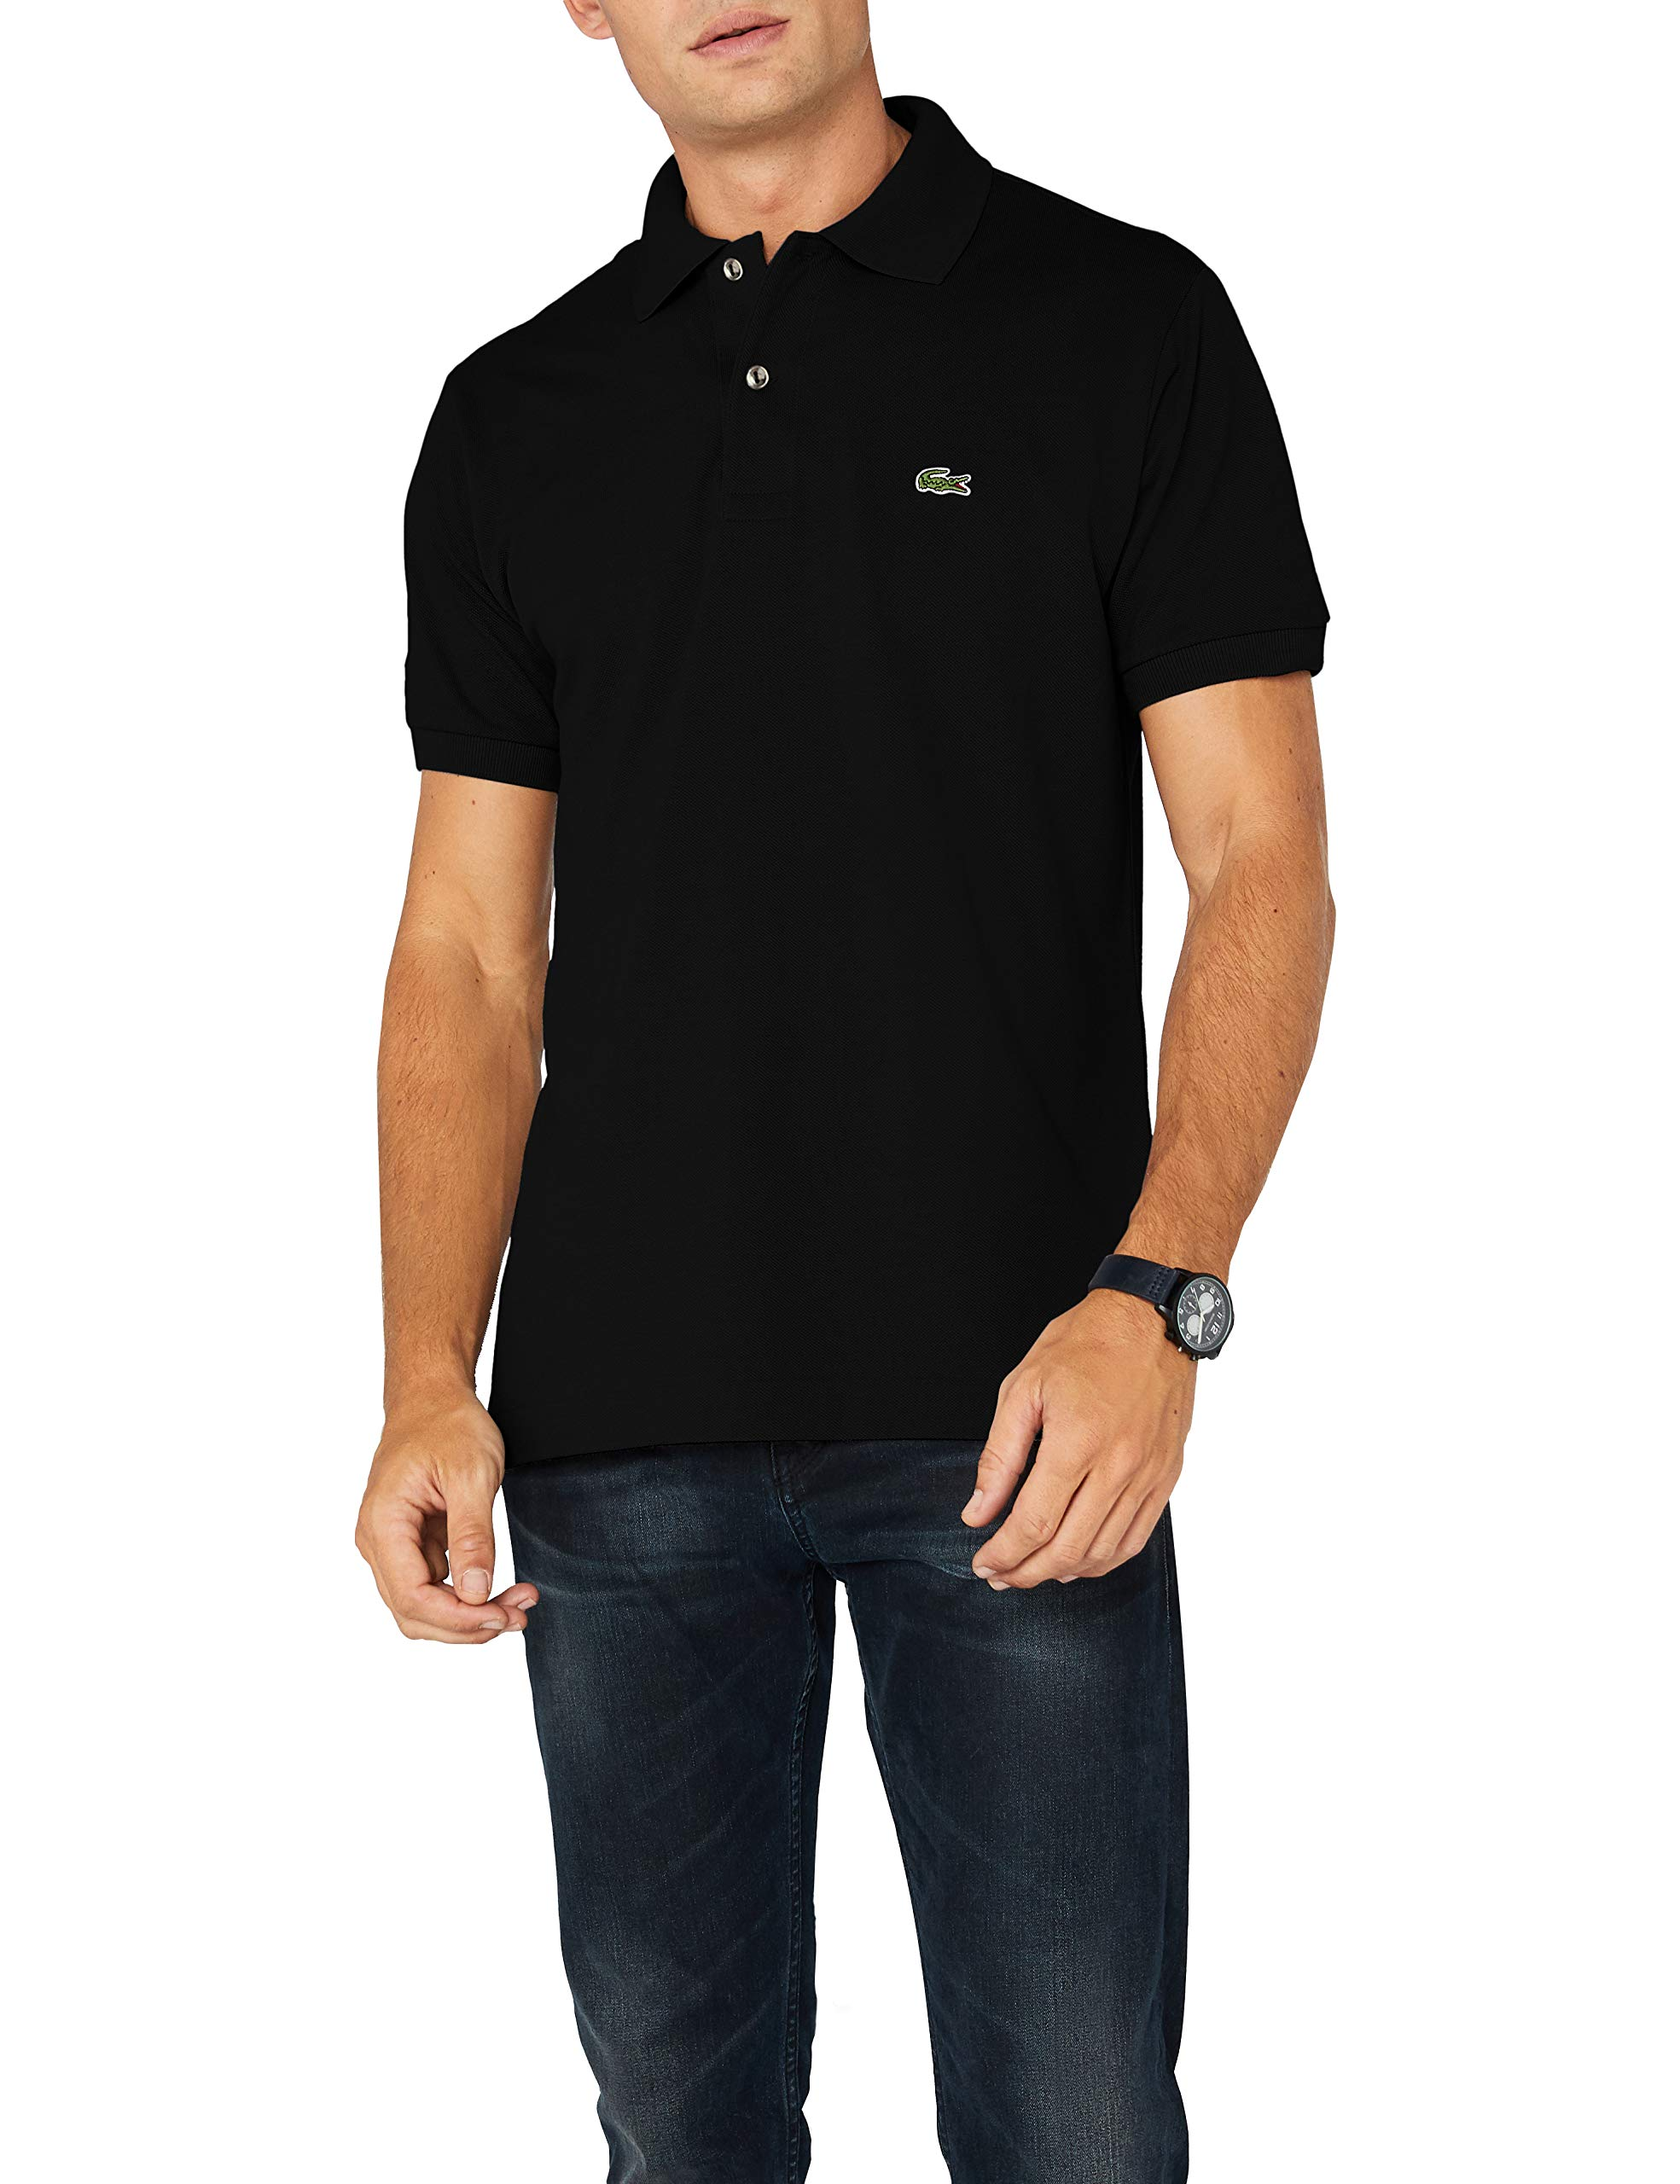 0fe286b0b2 Lacoste - L1212 - Polo - Coupe droite - Manches courtes - Homme product  image